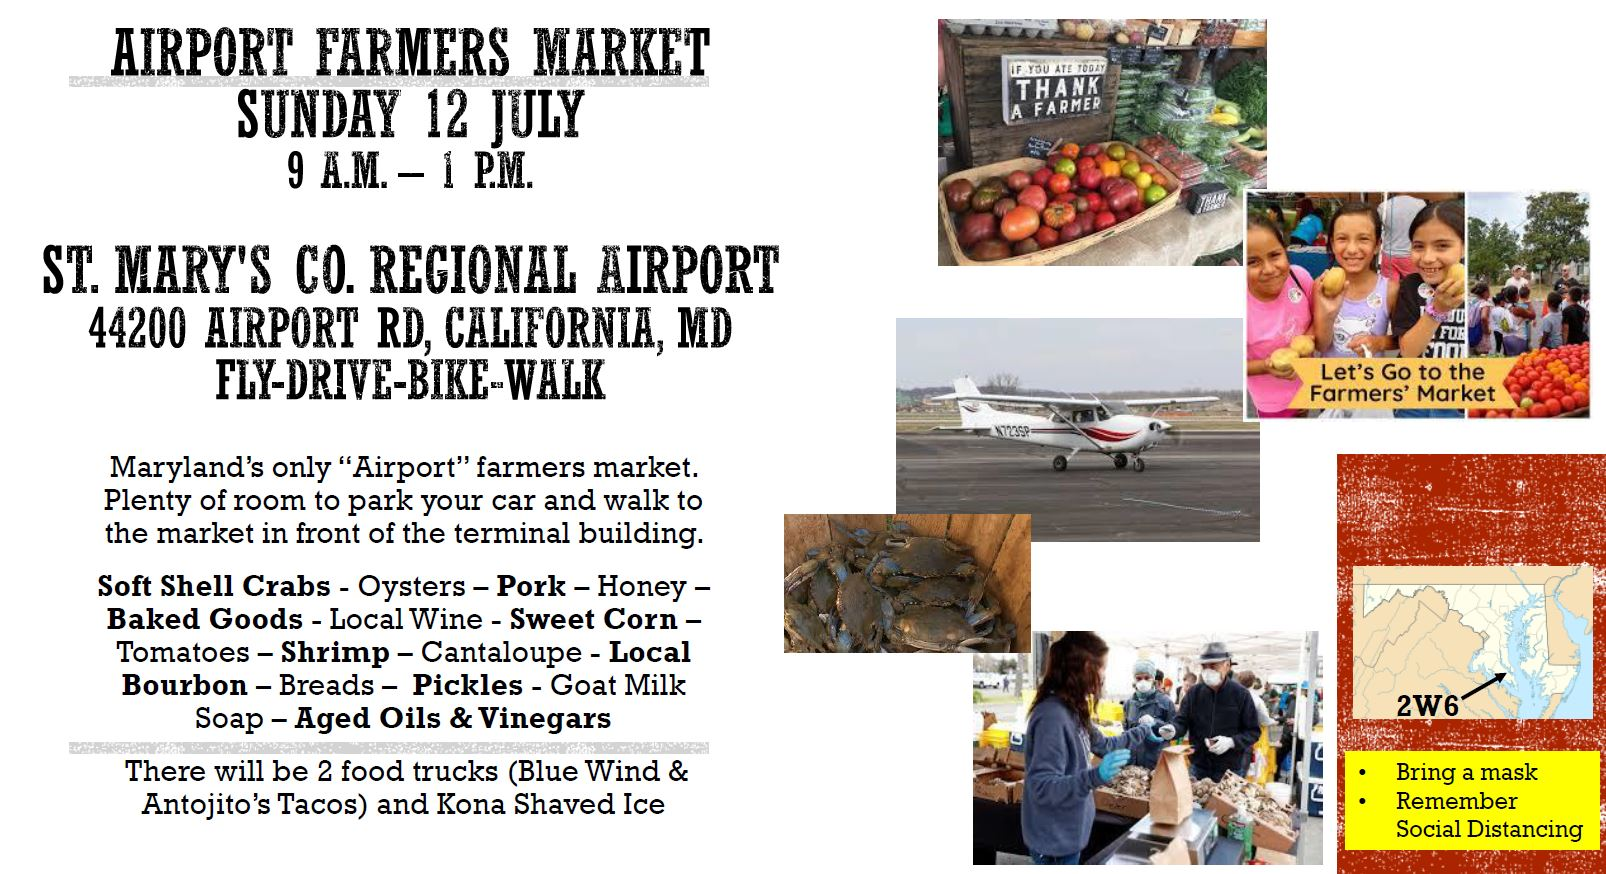 St. Mary's Airport Farmers Market